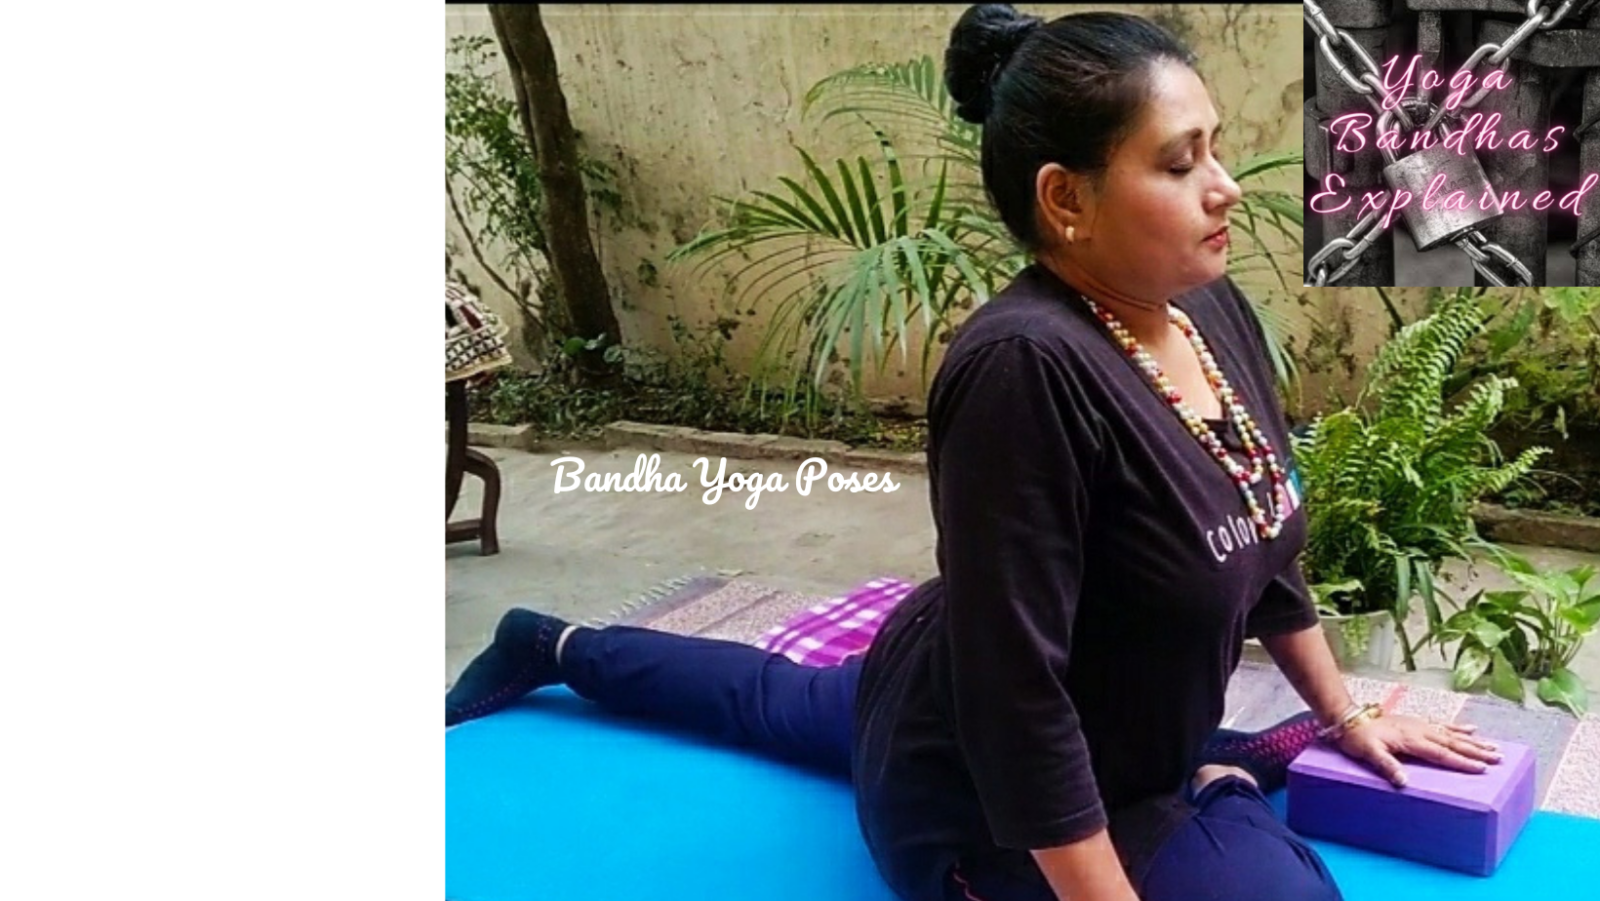 Yoga poses with Bandha featured